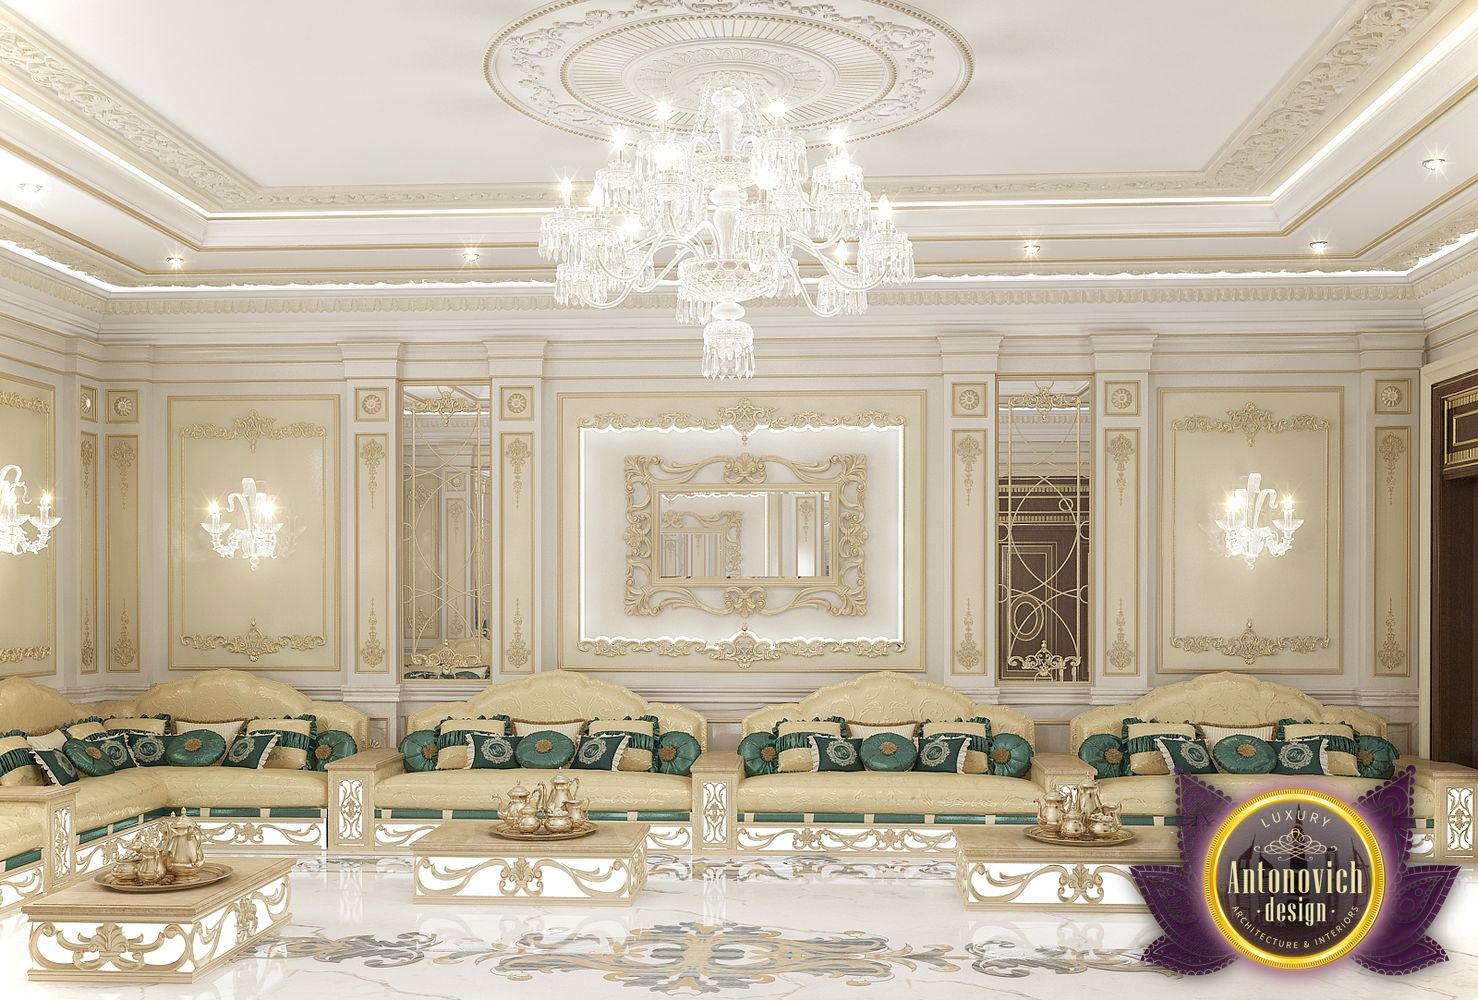 arabic style living room ideas painting for with vaulted ceilings majlis interior design from luxury antonovich ...